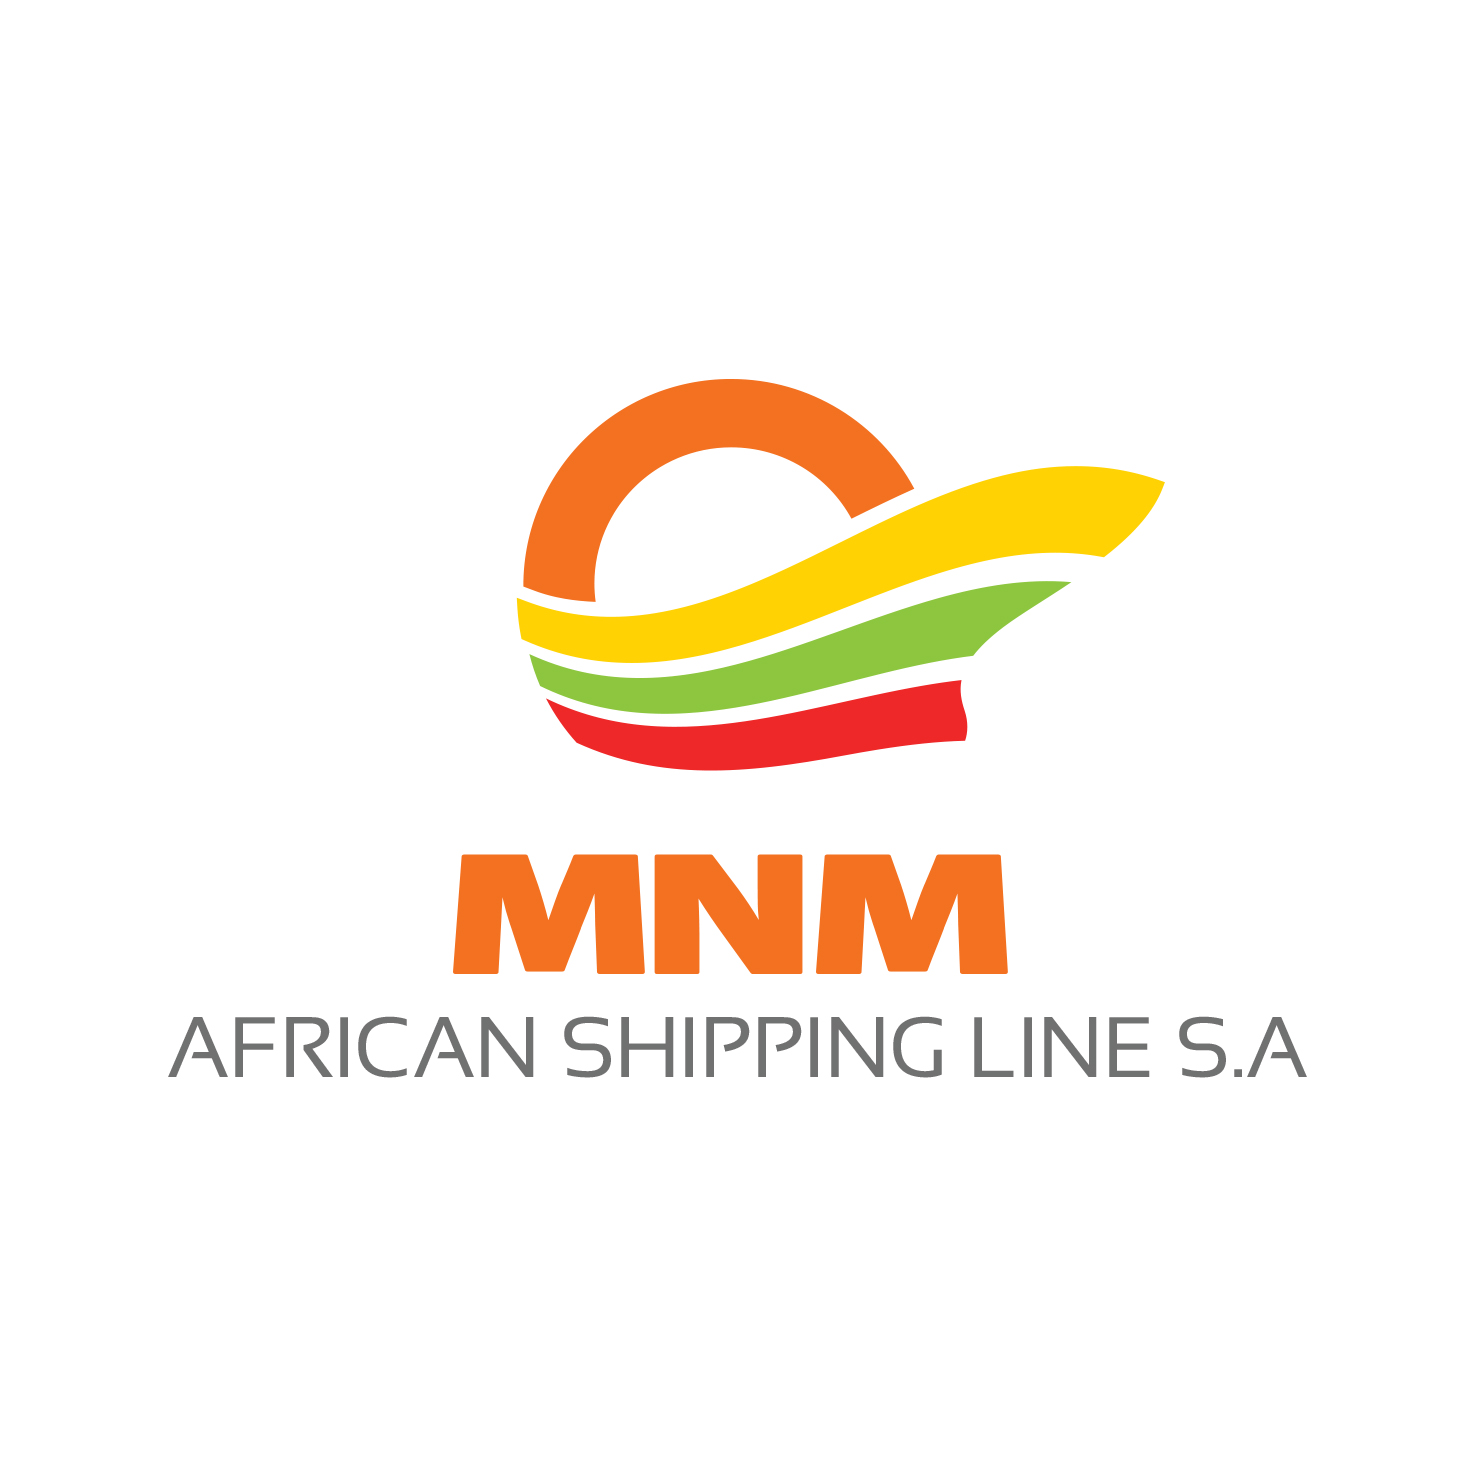 Charte graphique MNM African Shipping Line